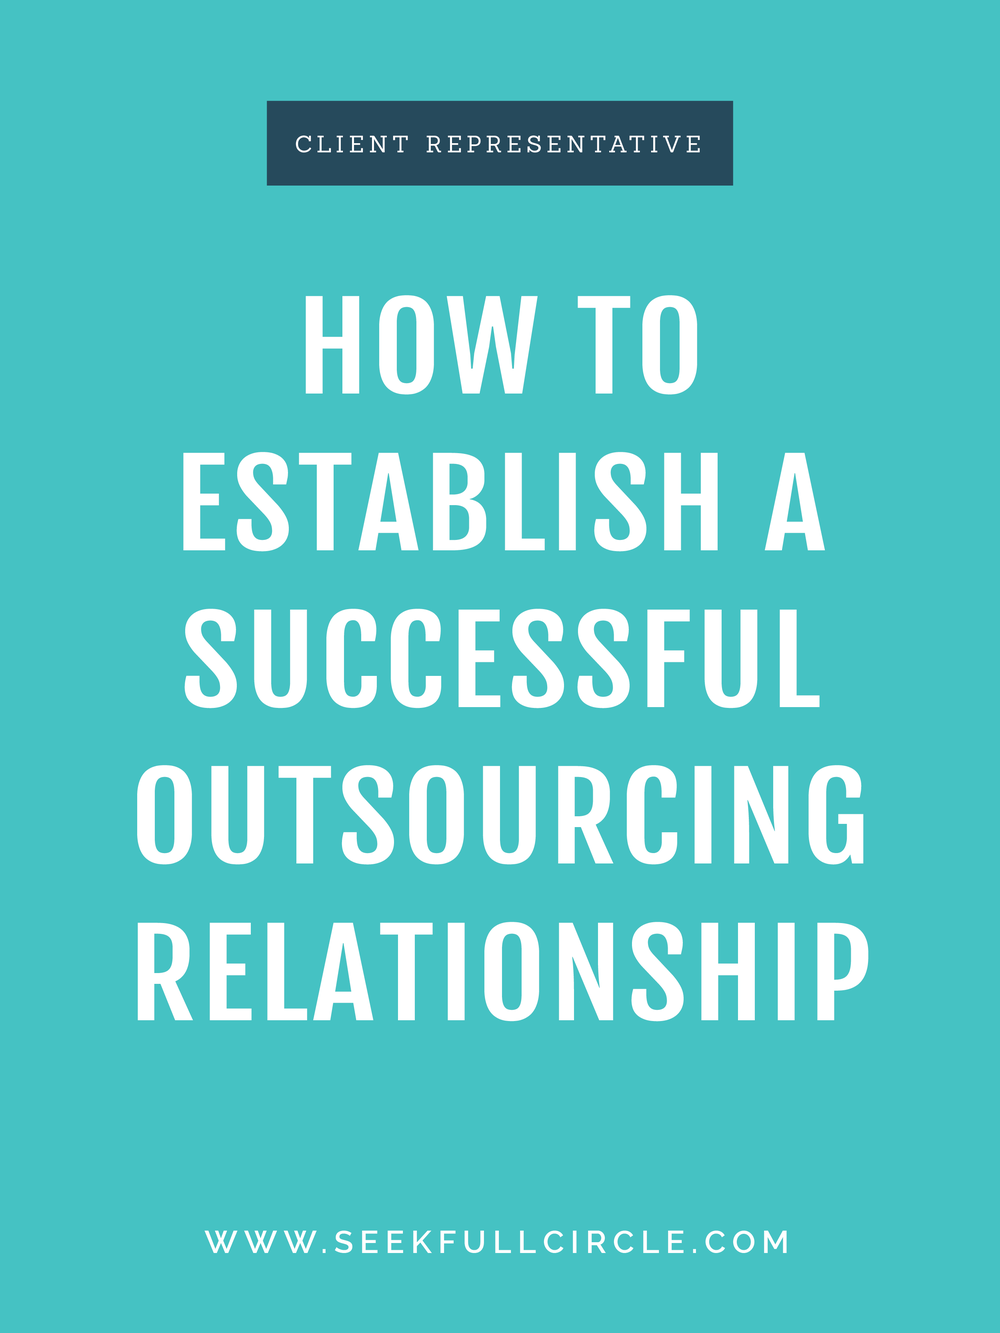 kim waltman fullcircle creative + coaching how to outsource blog